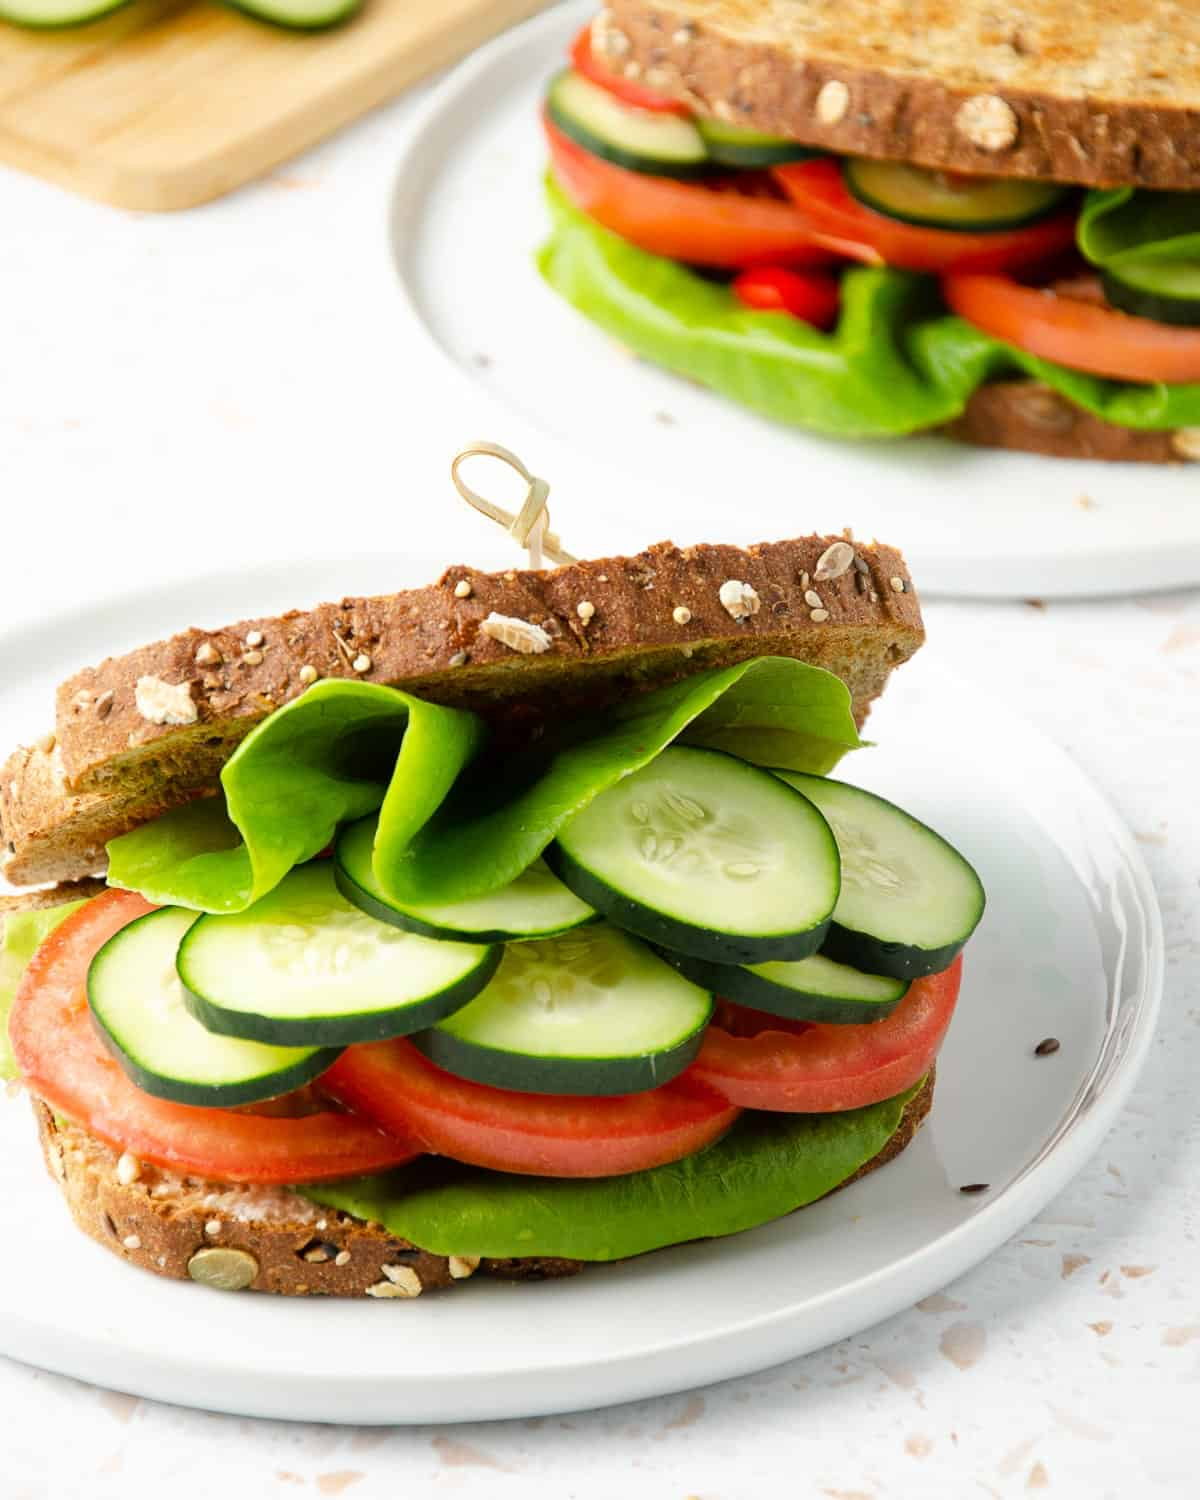 close up of a panera mediterranean veggie sandwich filled with butter lettuce, cucumber, tomato slices with a second sandwich and cutting board with fresh cucumber slices in the background.